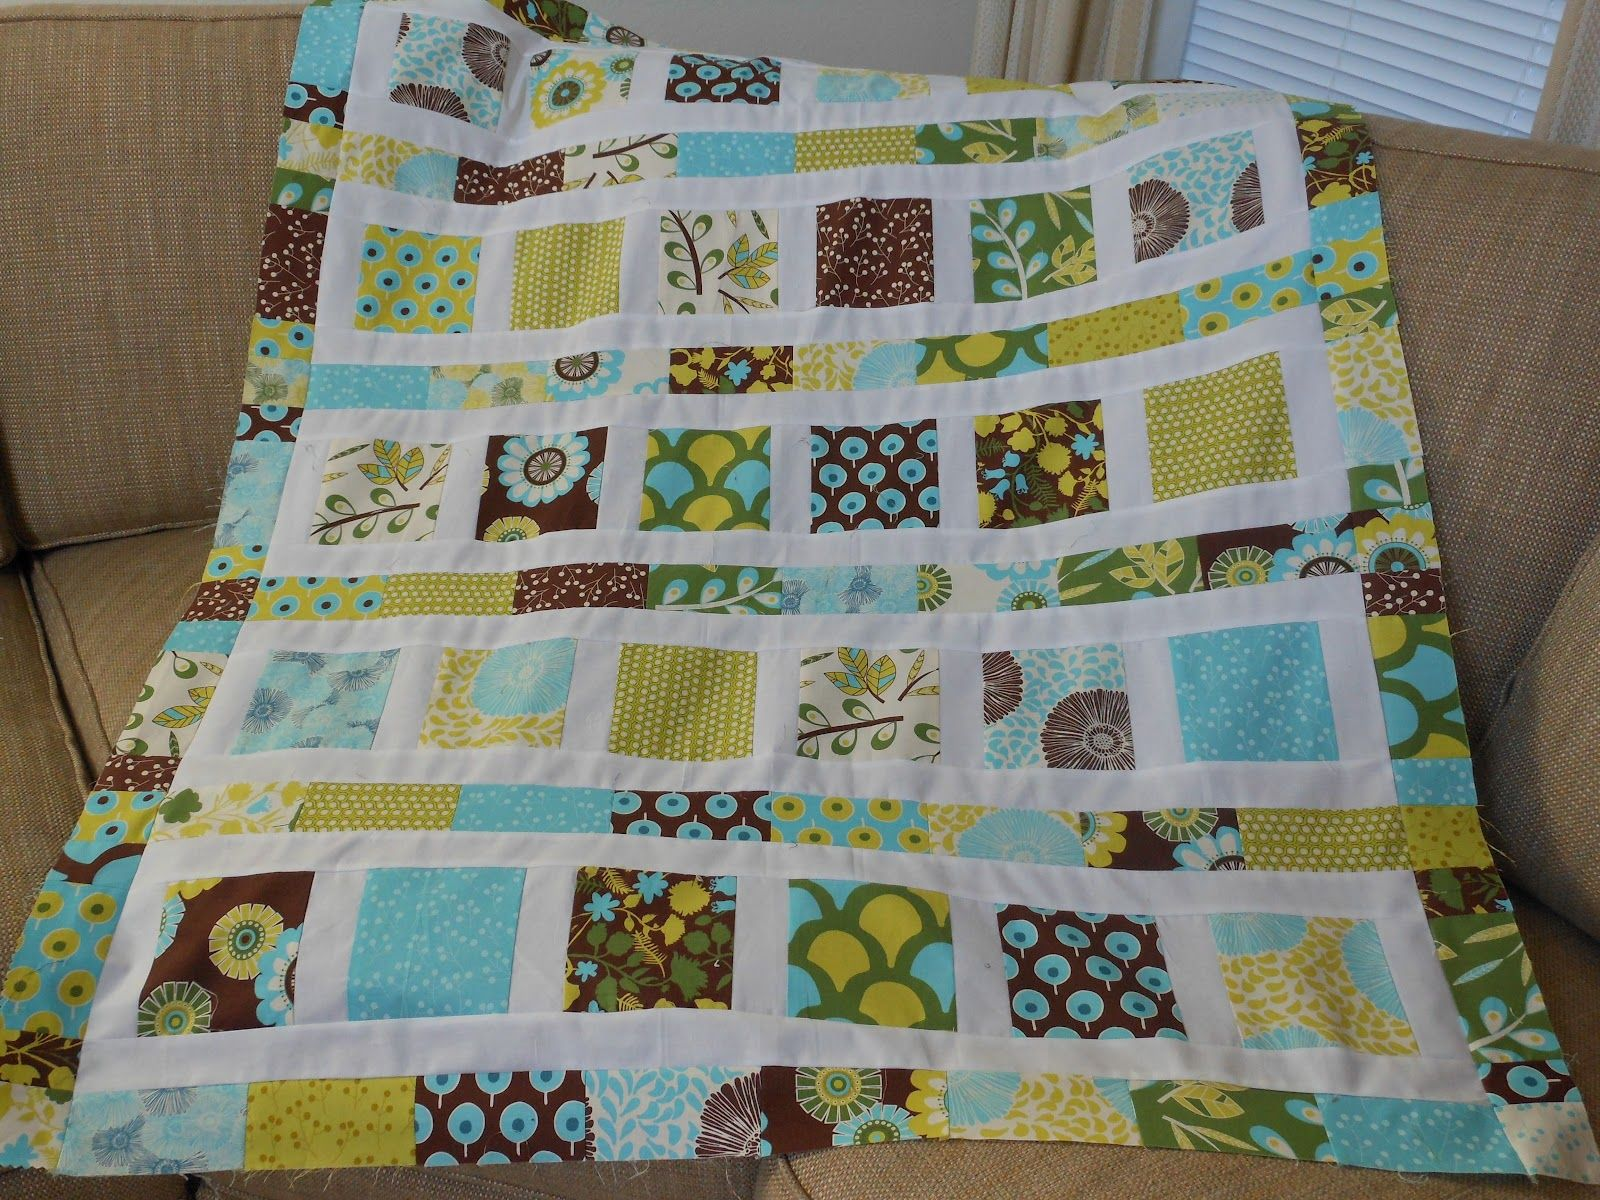 Modern Baby Quilt Designs | modern baby boy quilt patterns baby ... : charm quilt patterns easy - Adamdwight.com